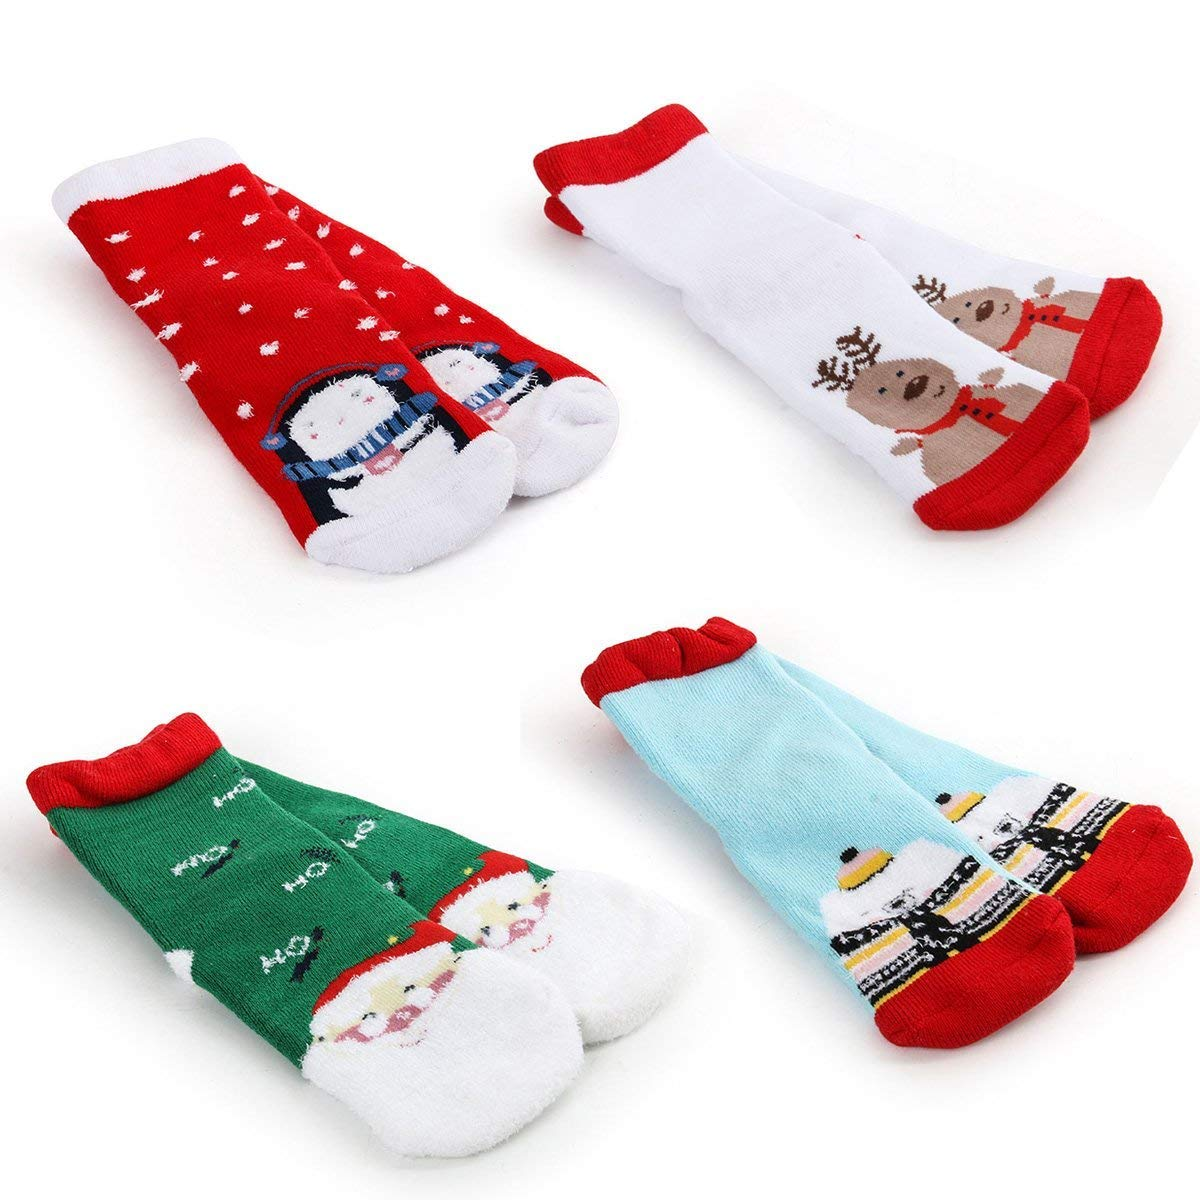 f50665cae08 Amazon.com  Unisex Baby Toddler Kids Socks Boys Girls Cute Xmas Gift  Holiday Socks 4 Pairs